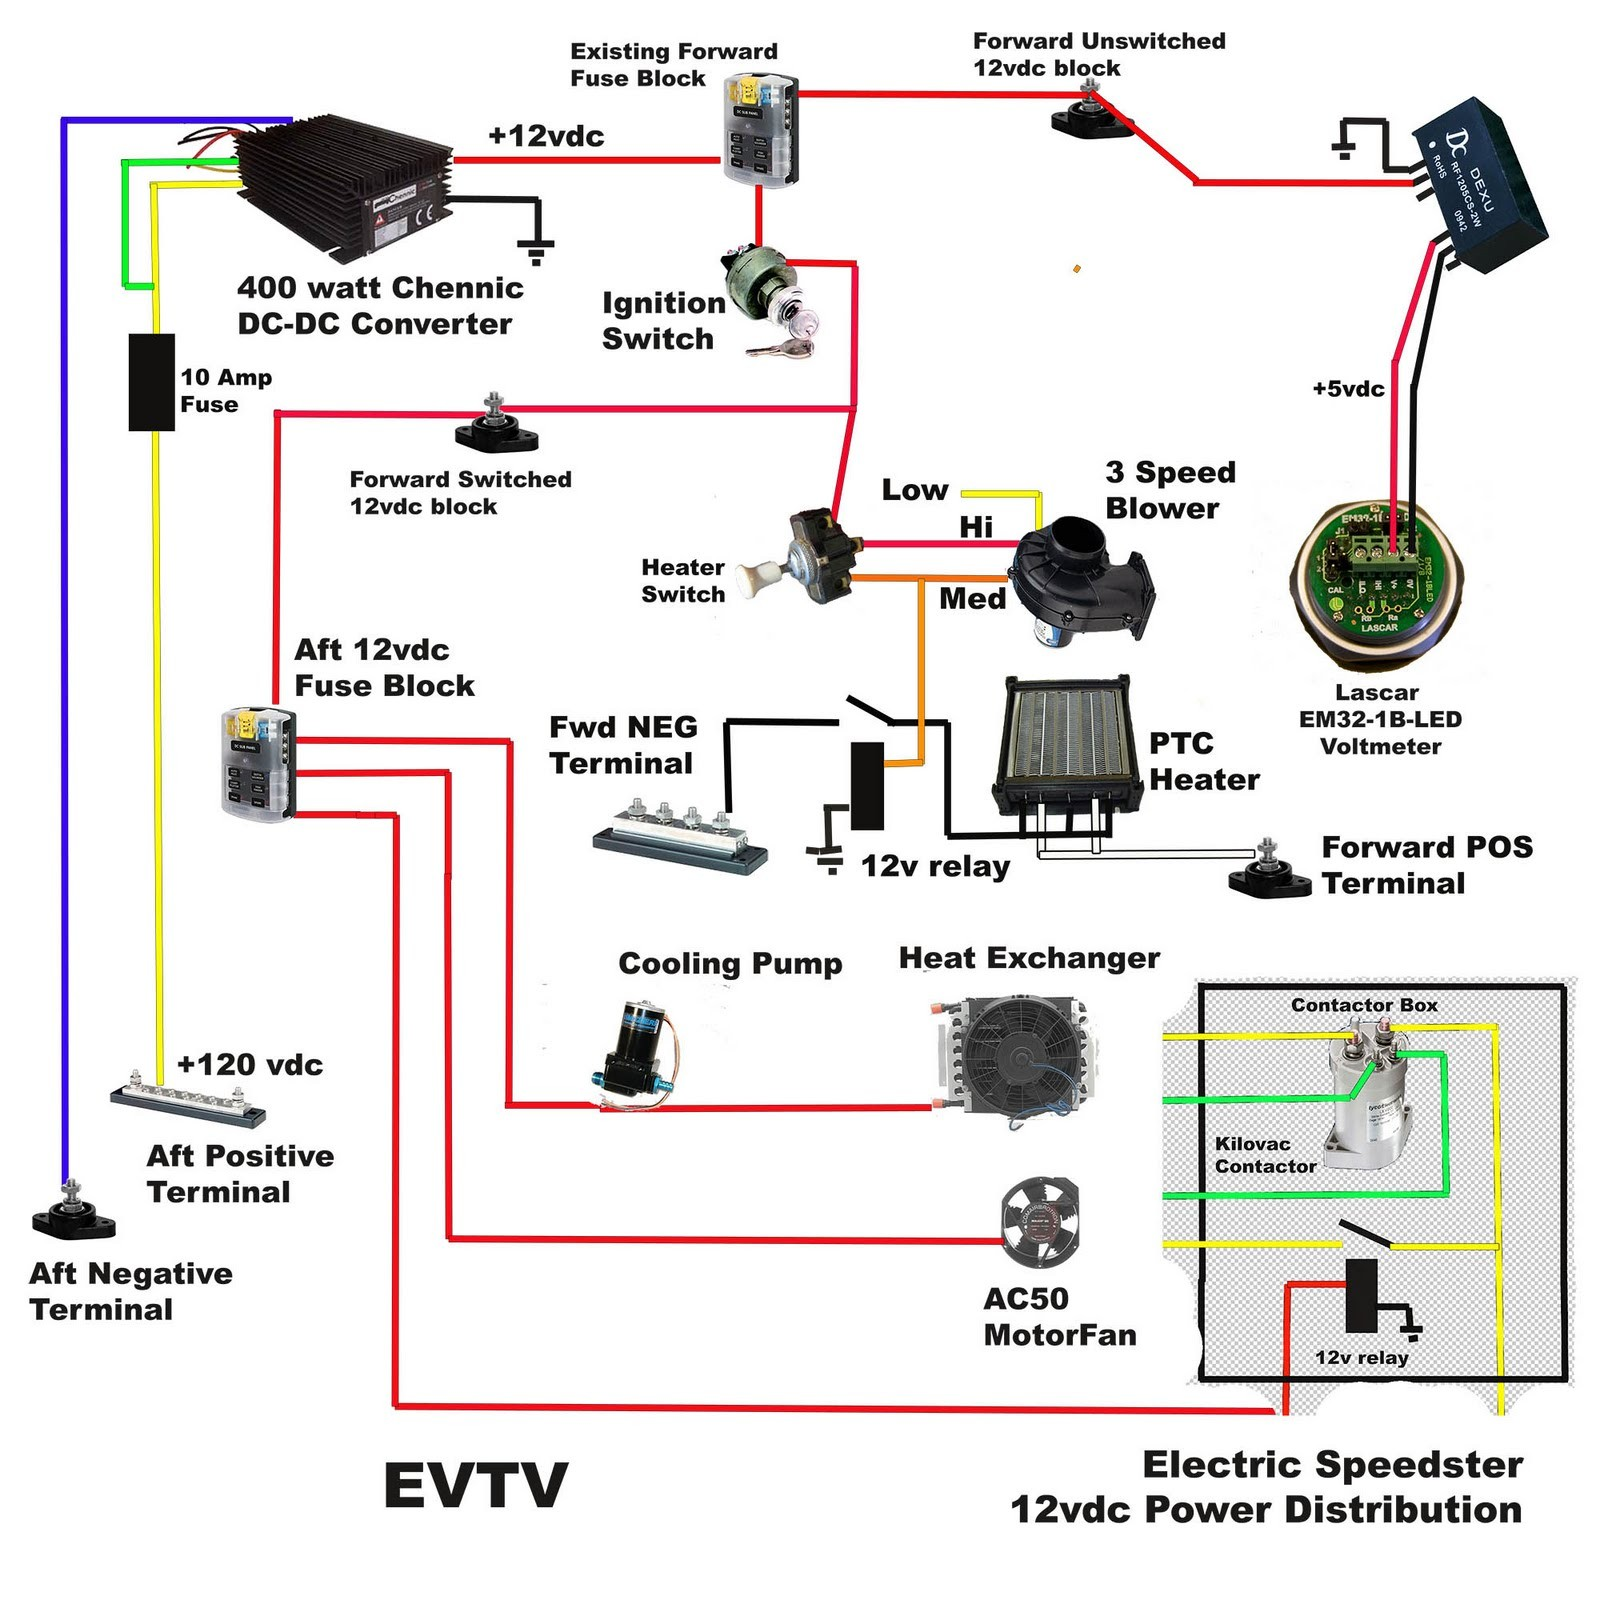 Car ac system diagram split air conditioner wiring diagram pdf car ac system diagram awesome car air conditioning system wiring diagram contemporary of car ac system cheapraybanclubmaster Image collections